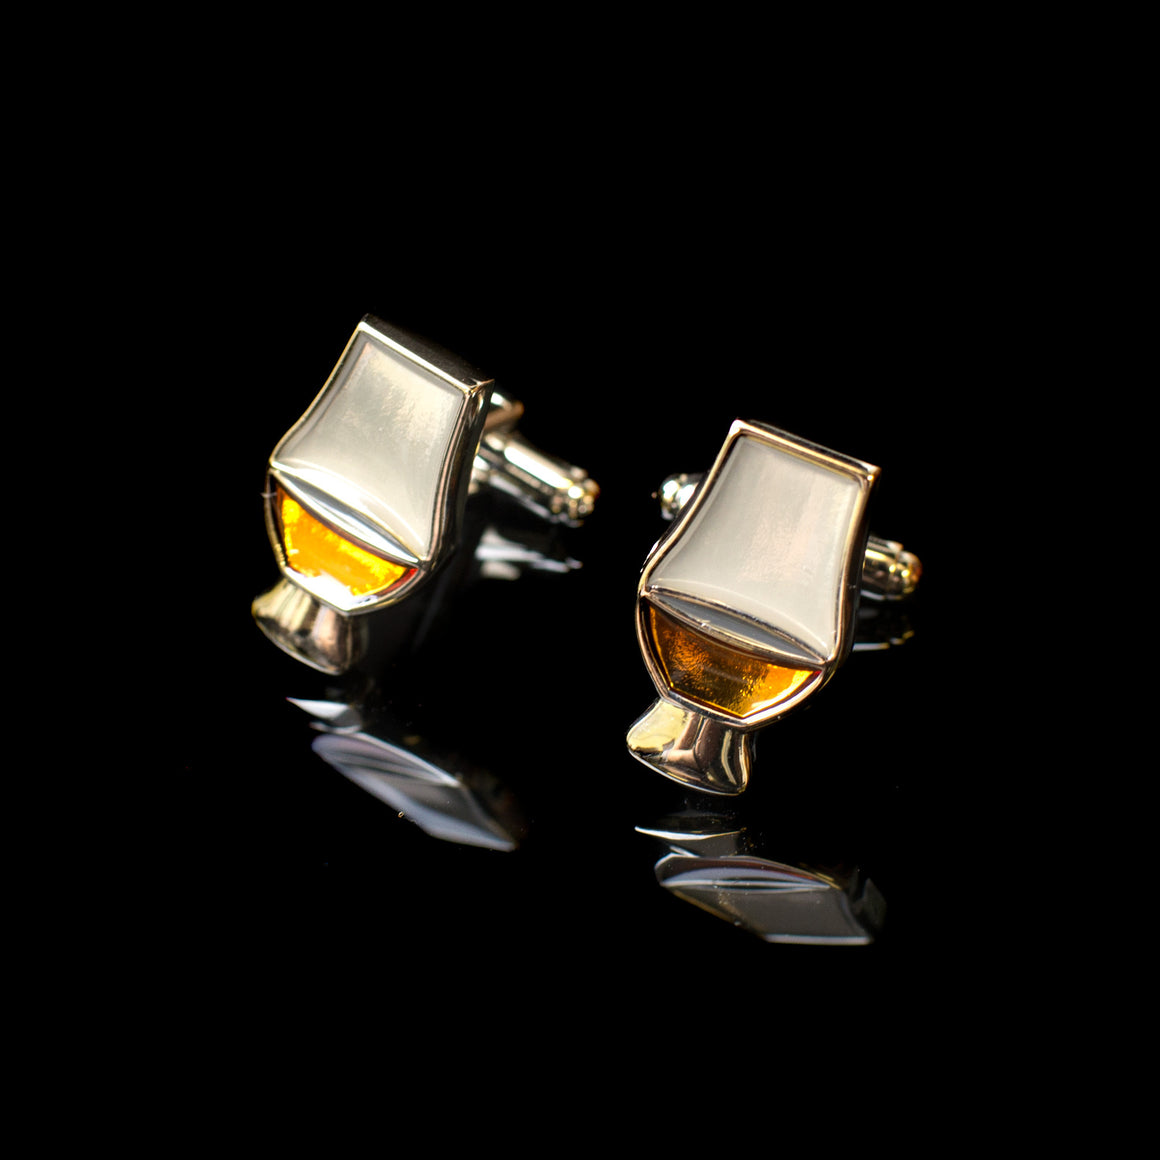 Glencairn Whisky Glass Cufflinks